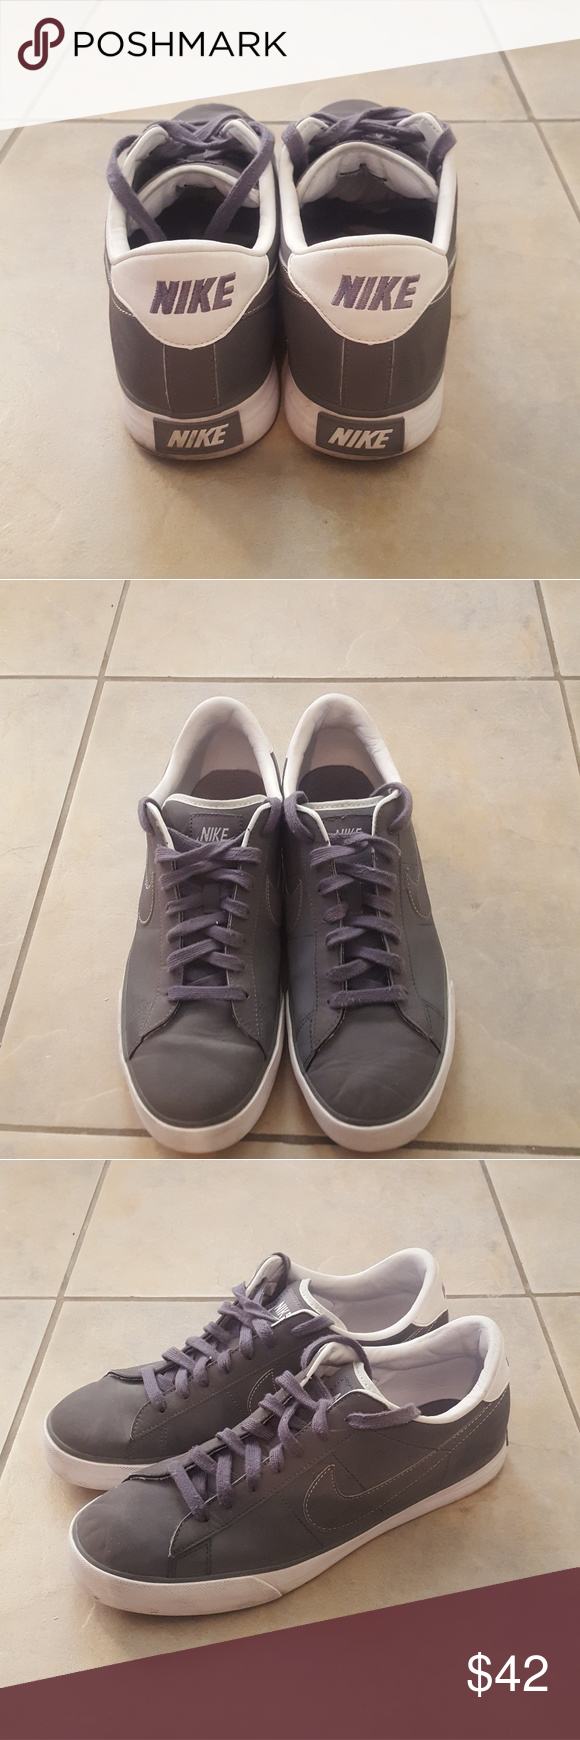 Nike Sweet Classic Mens Shoes 10.5 Swede gray with white trim Genuine  leather sneakers Barely worn Very good condition Nike Shoes Sneakers ffd049b41